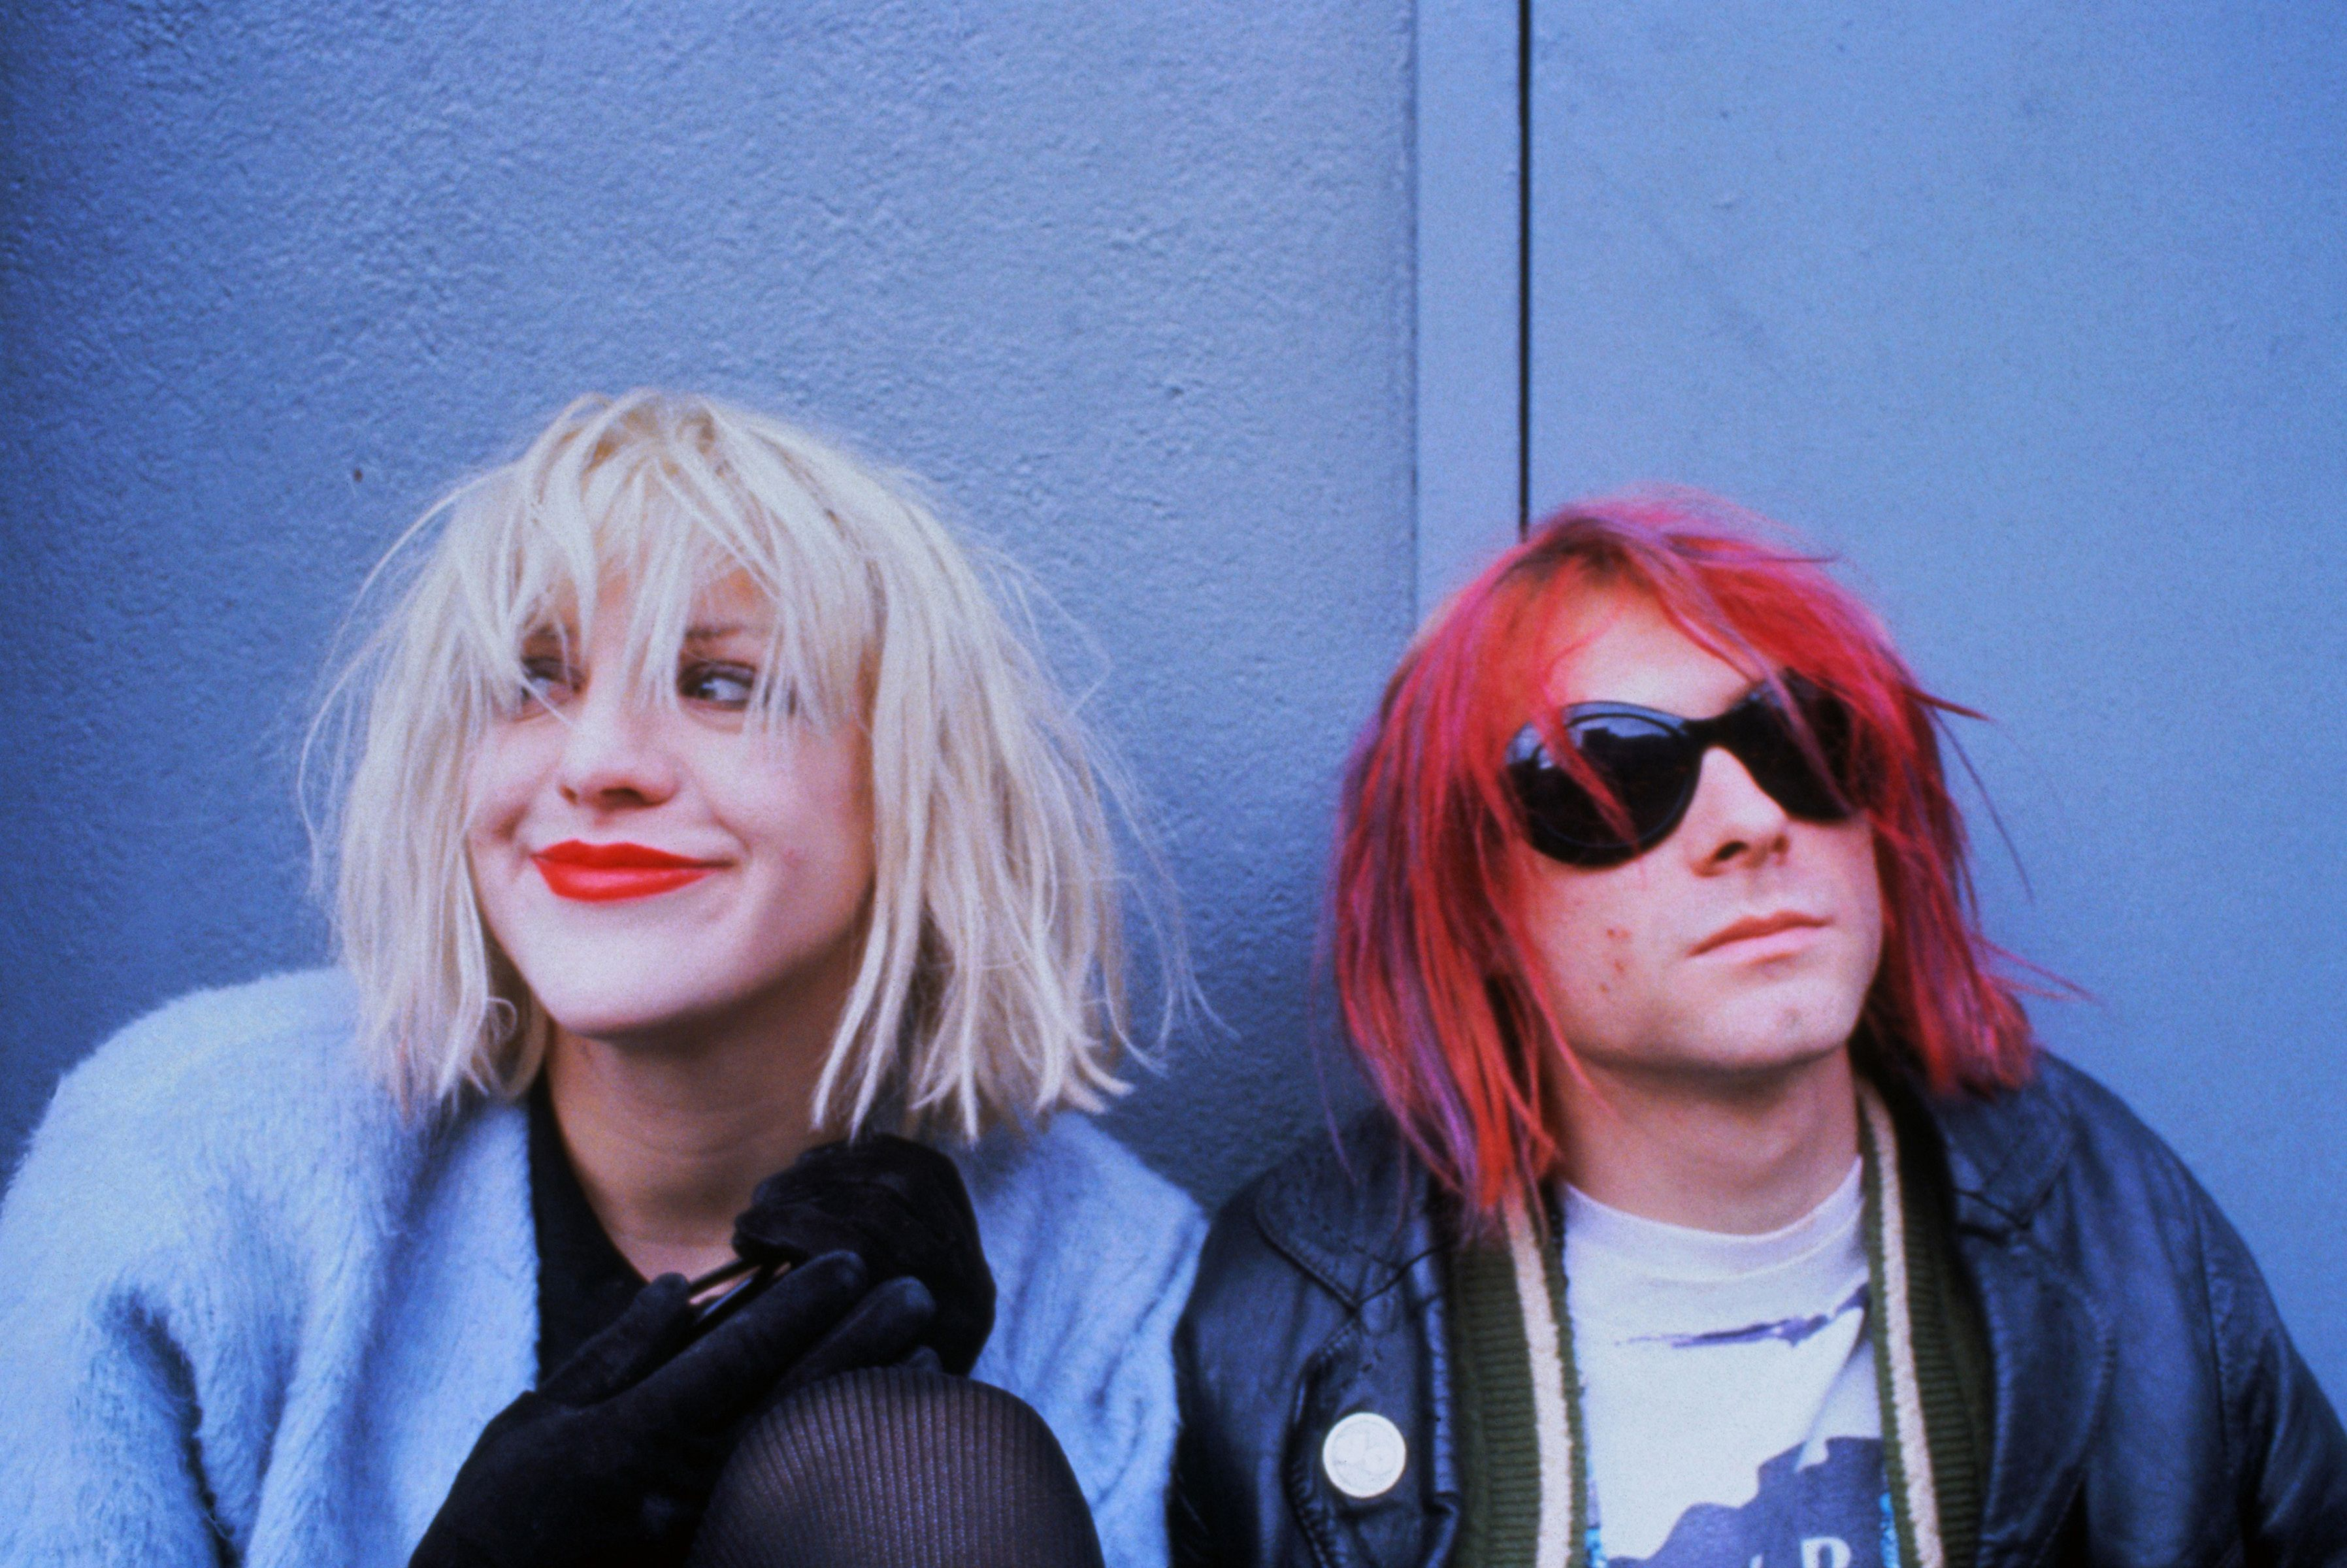 Here are the intimate details Courtney Love shares about Kurt Cobain in 'Montage of Heck'